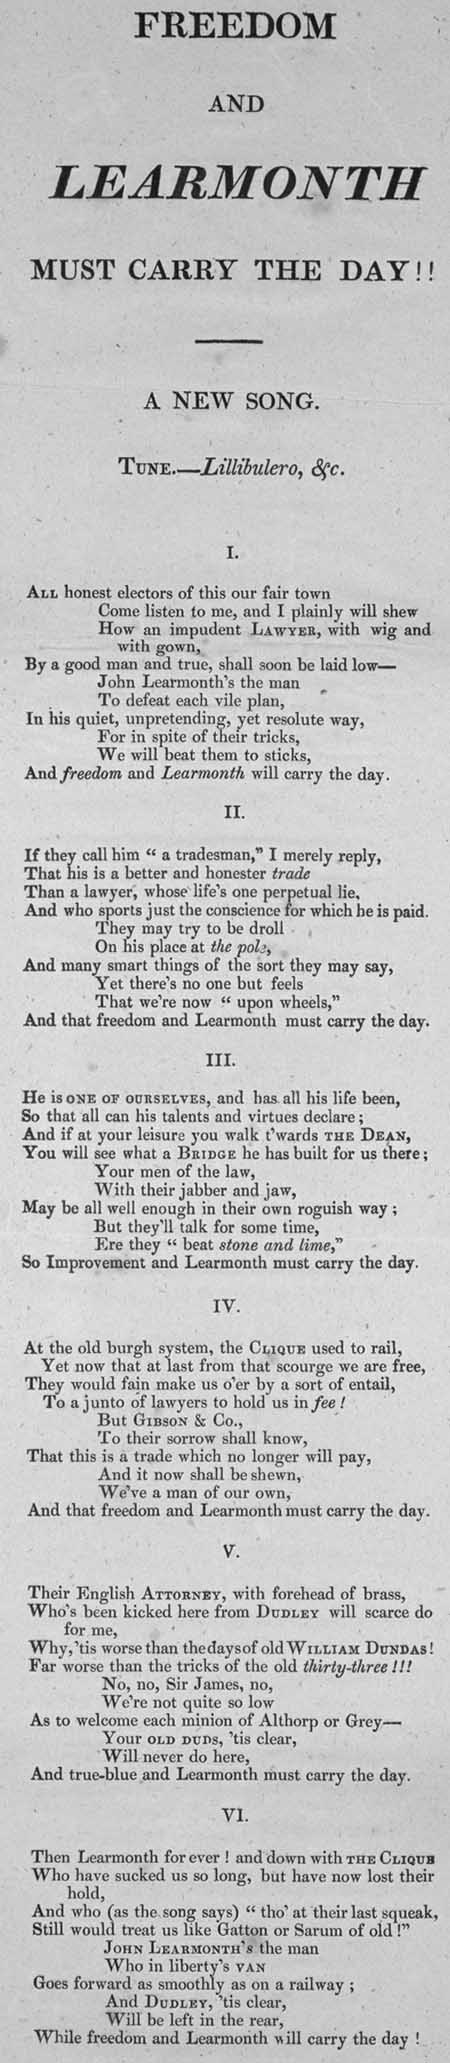 Broadside ballad entitled 'Freedom and Learmonth Must Carry the Day'